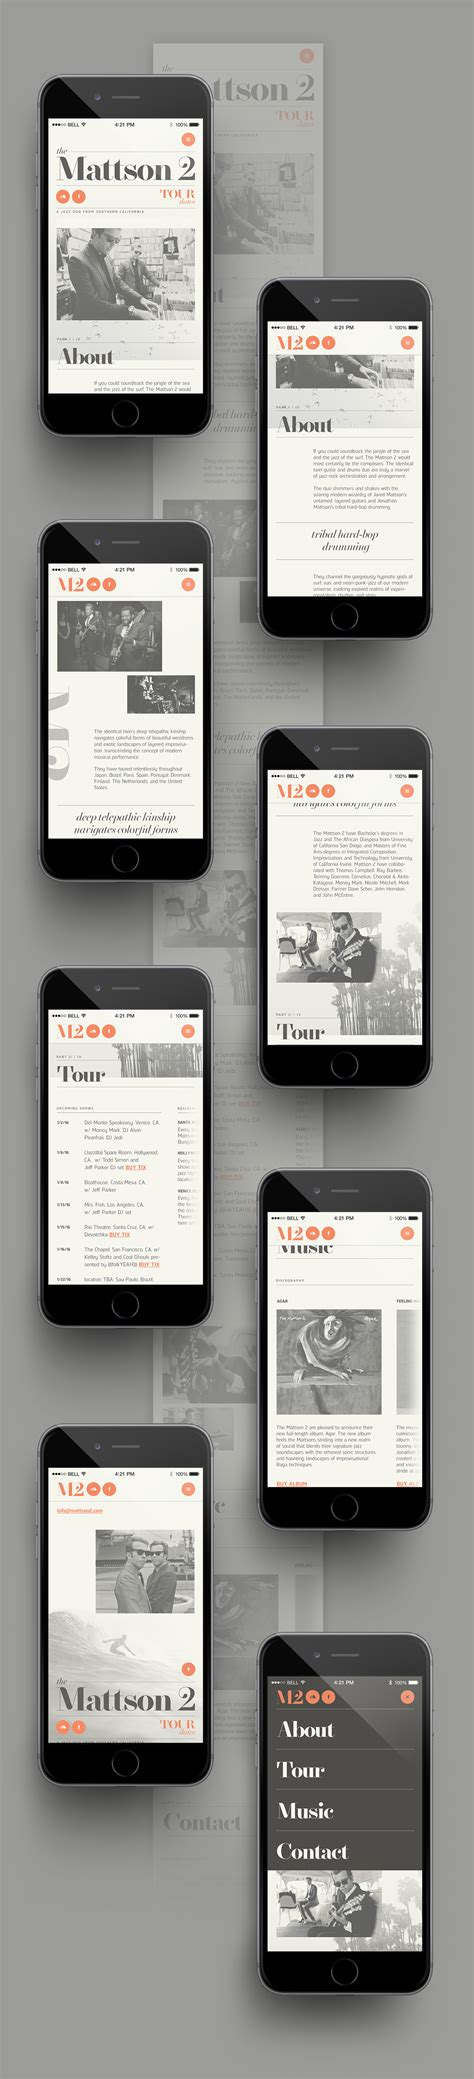 mobile layout design inspiration web the mattson 2 concept on behance